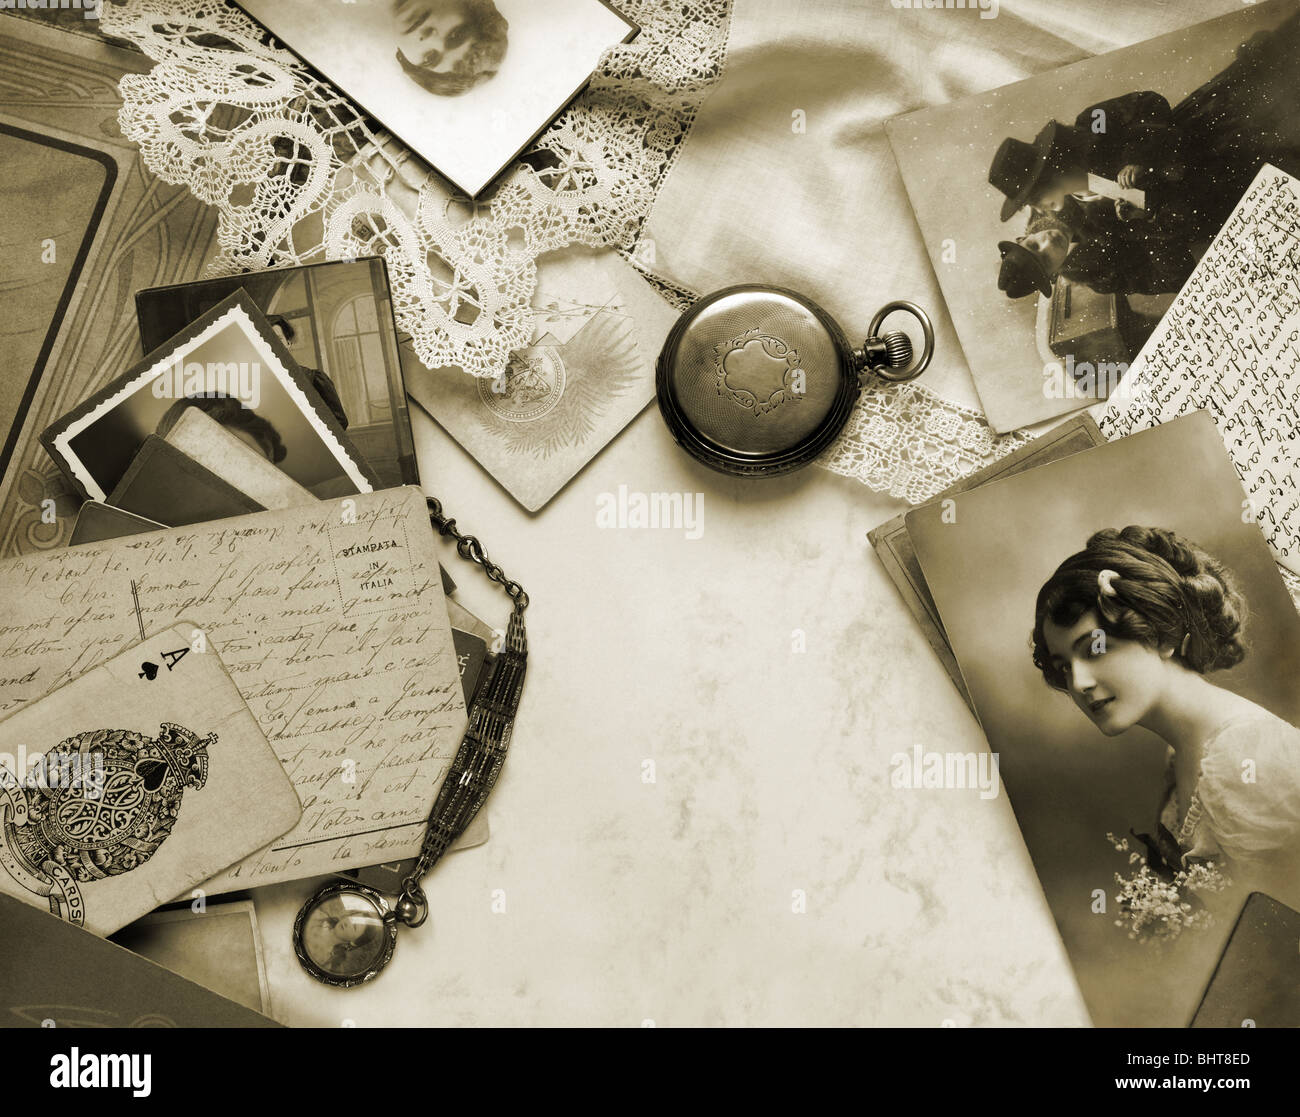 Memories in sepia. Composition of vintage photographs and other objects. - Stock Image